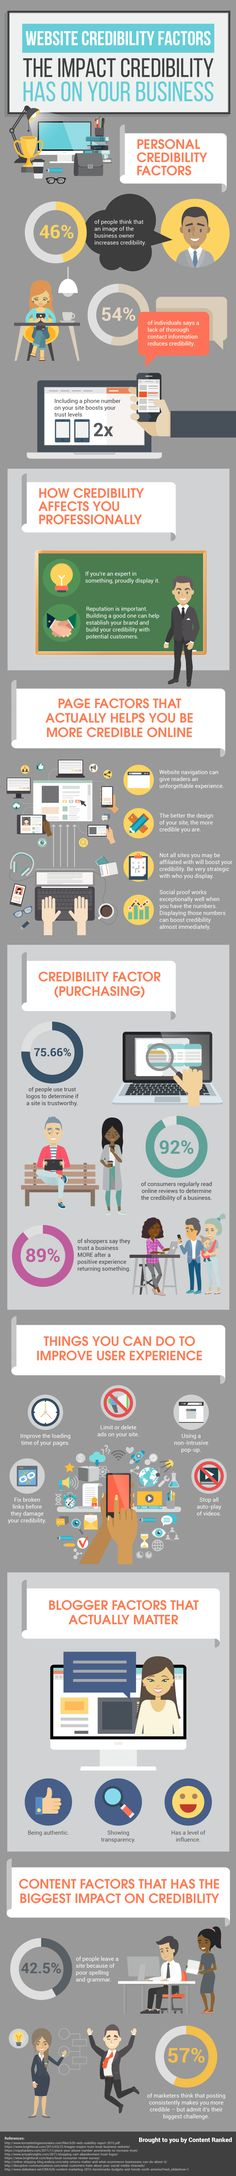 Website Credibility Factors #infographic